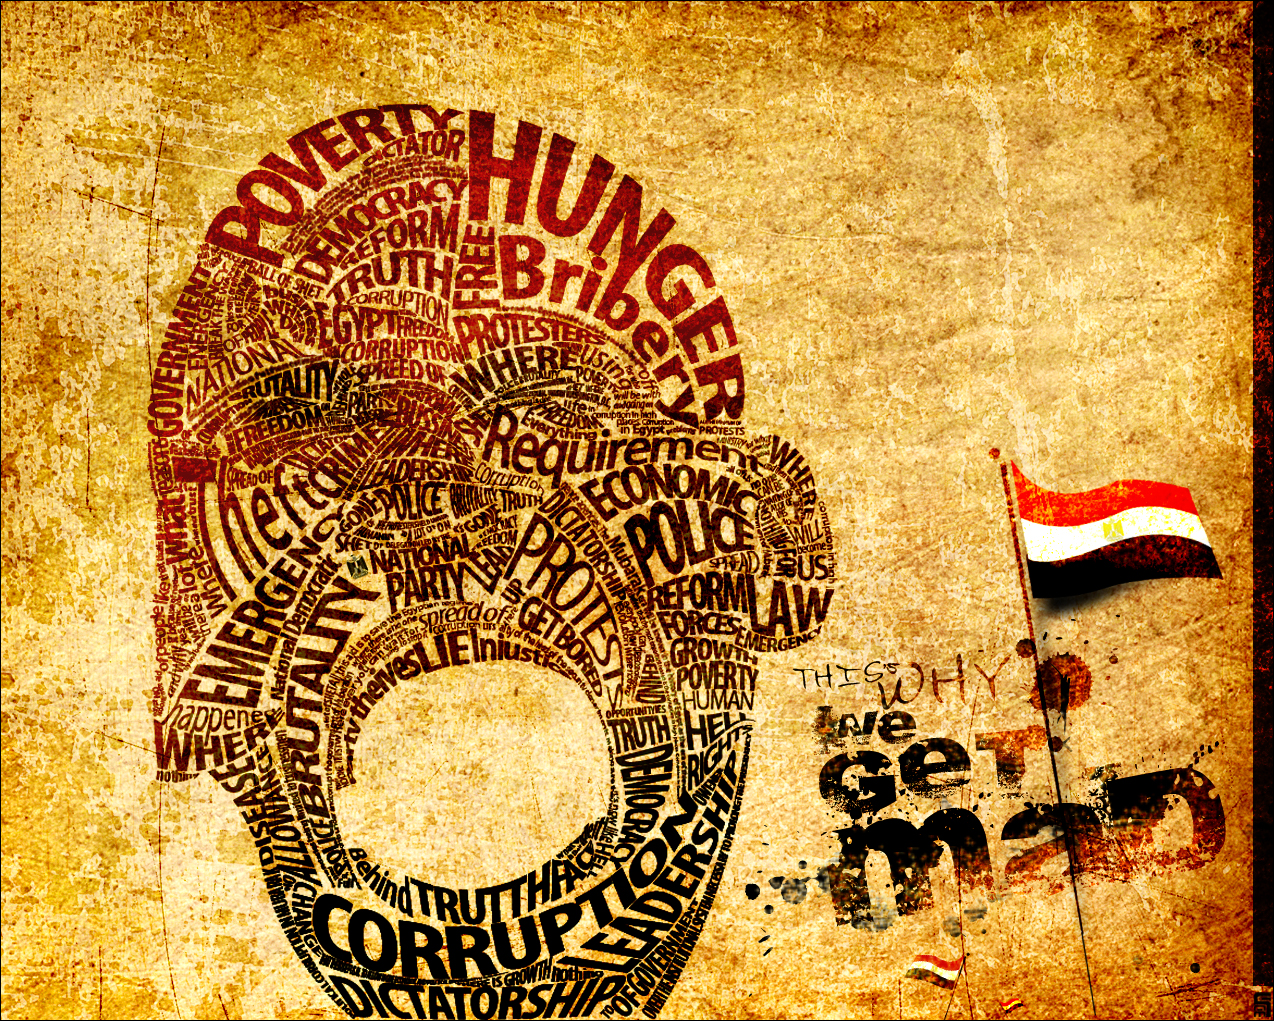 egyptian_revolution_got_real_by_eng_sam-d39fuwr